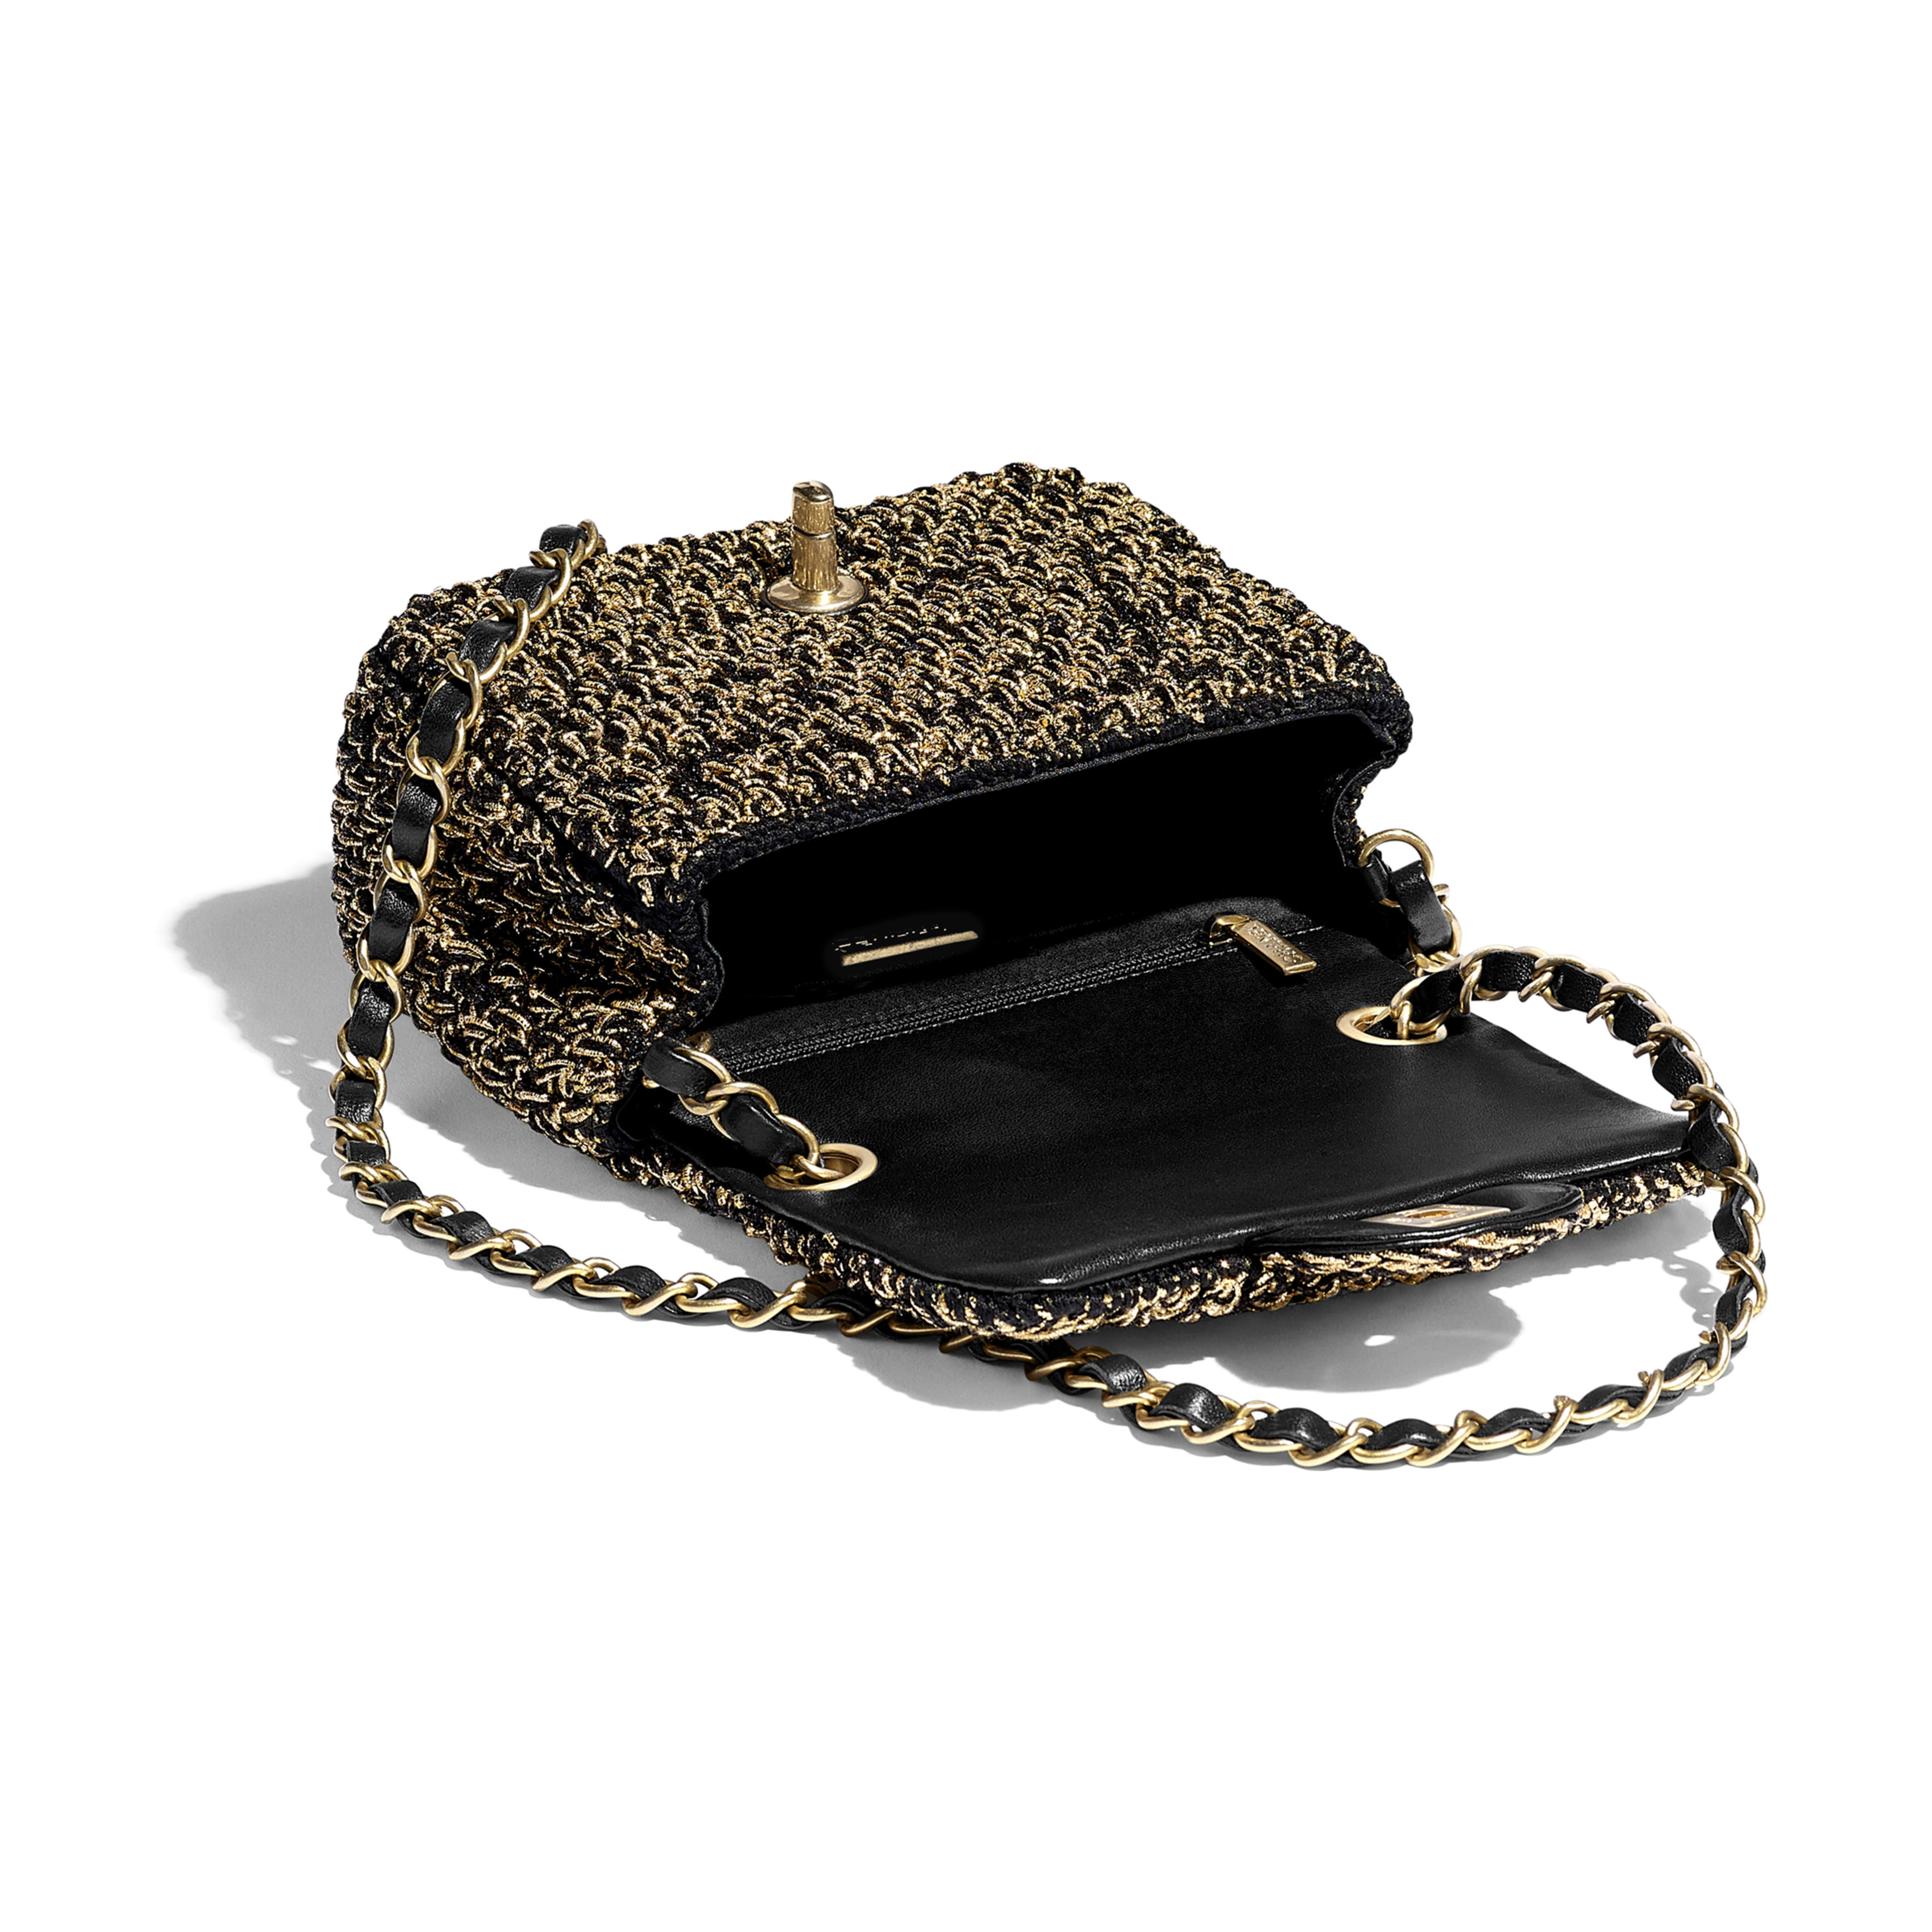 Mini Flap Bag - Black & Gold - Cotton, Mixed Fibers & Gold-Tone Metal - Other view - see full sized version